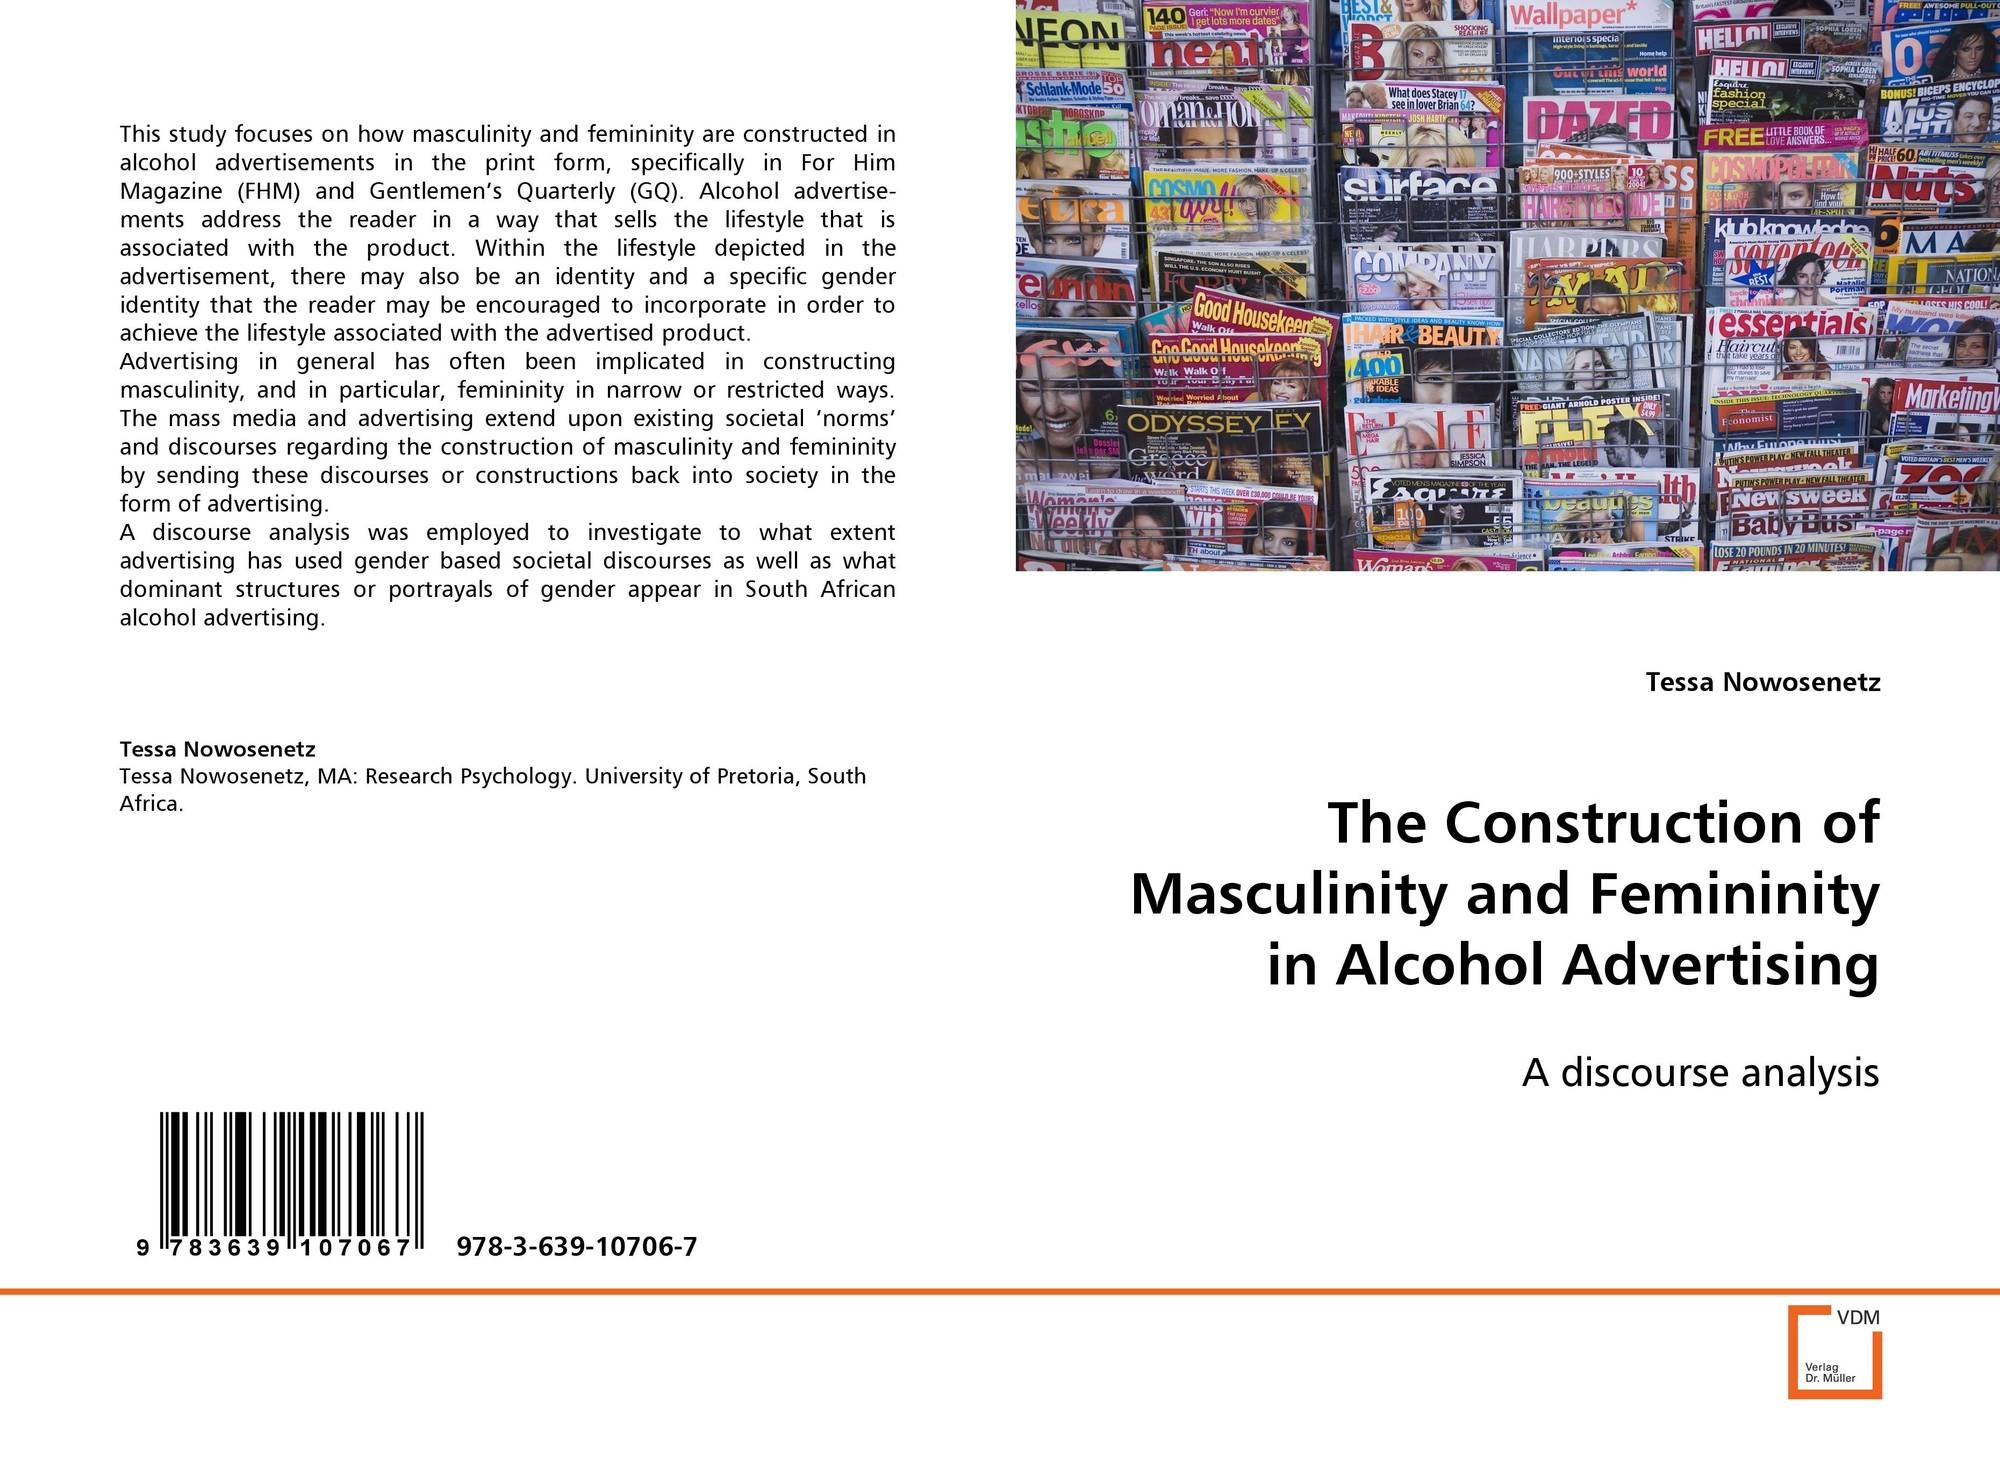 what are some examples of concepts or constructions of masculinity and femininity in society and in  What are some examples of concepts or constructions of masculinity and femininity in society and in media no longer possible in contemporary society to interpret femininity and masculinity.